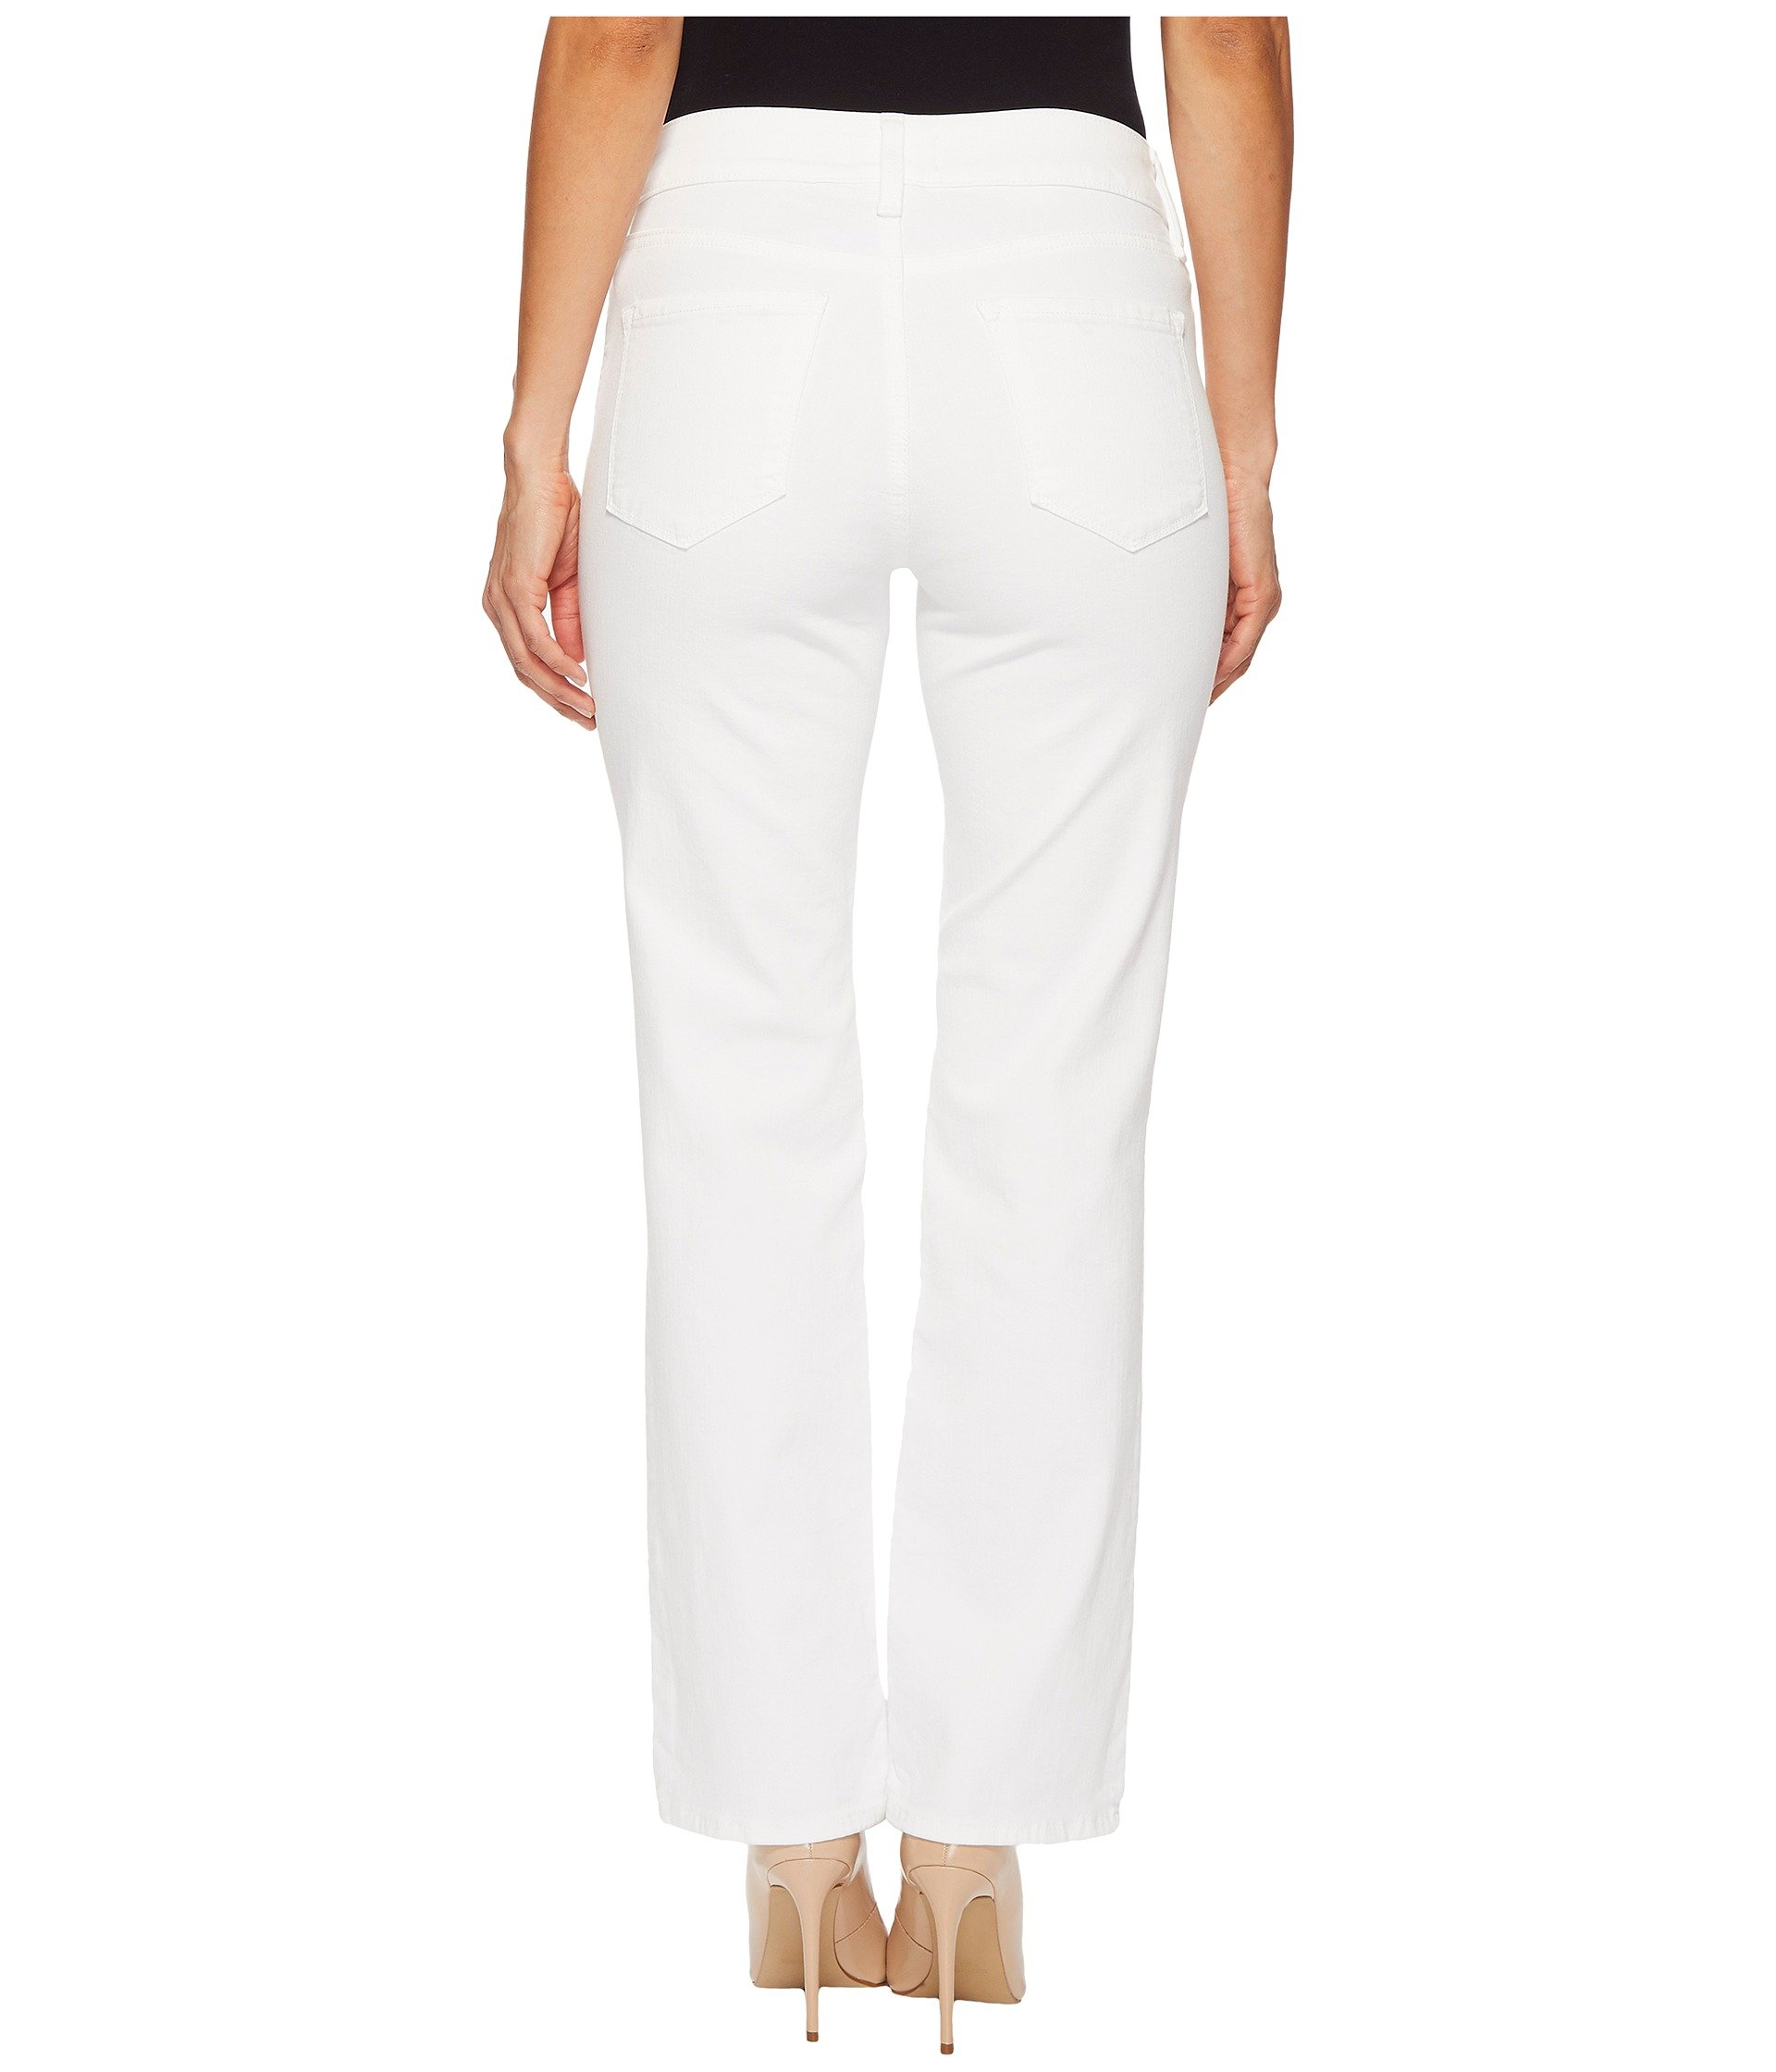 Petite Marilyn Straight in Optic White (Optic White) Womens Jeans NYDJ Petite Cheapest ib1ide9wO